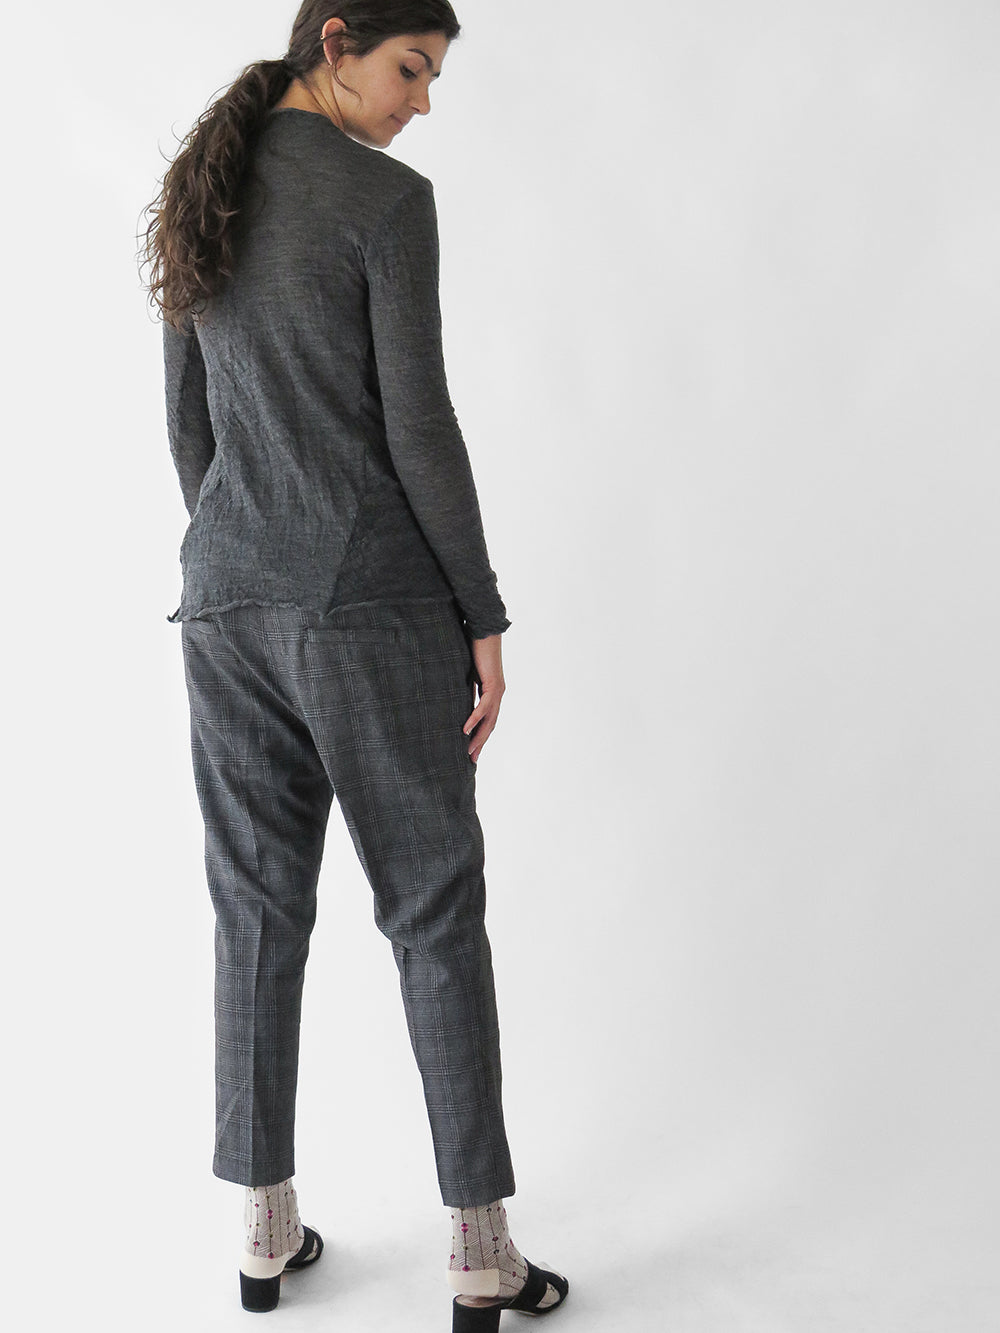 hazel brown skinny trouser in grey